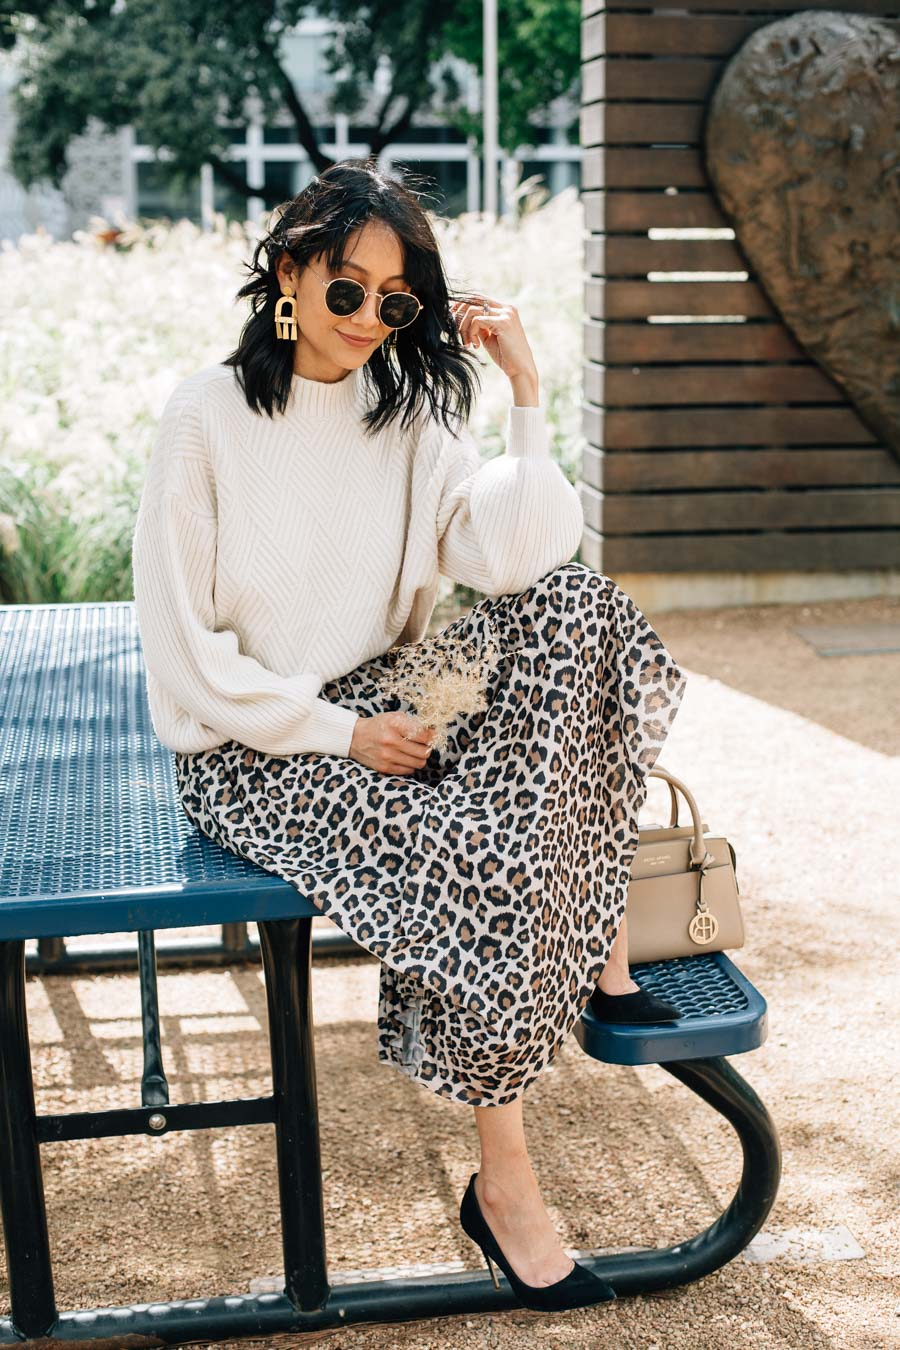 Lilly Beltran wearing an animal print skirt and oversized sweater.